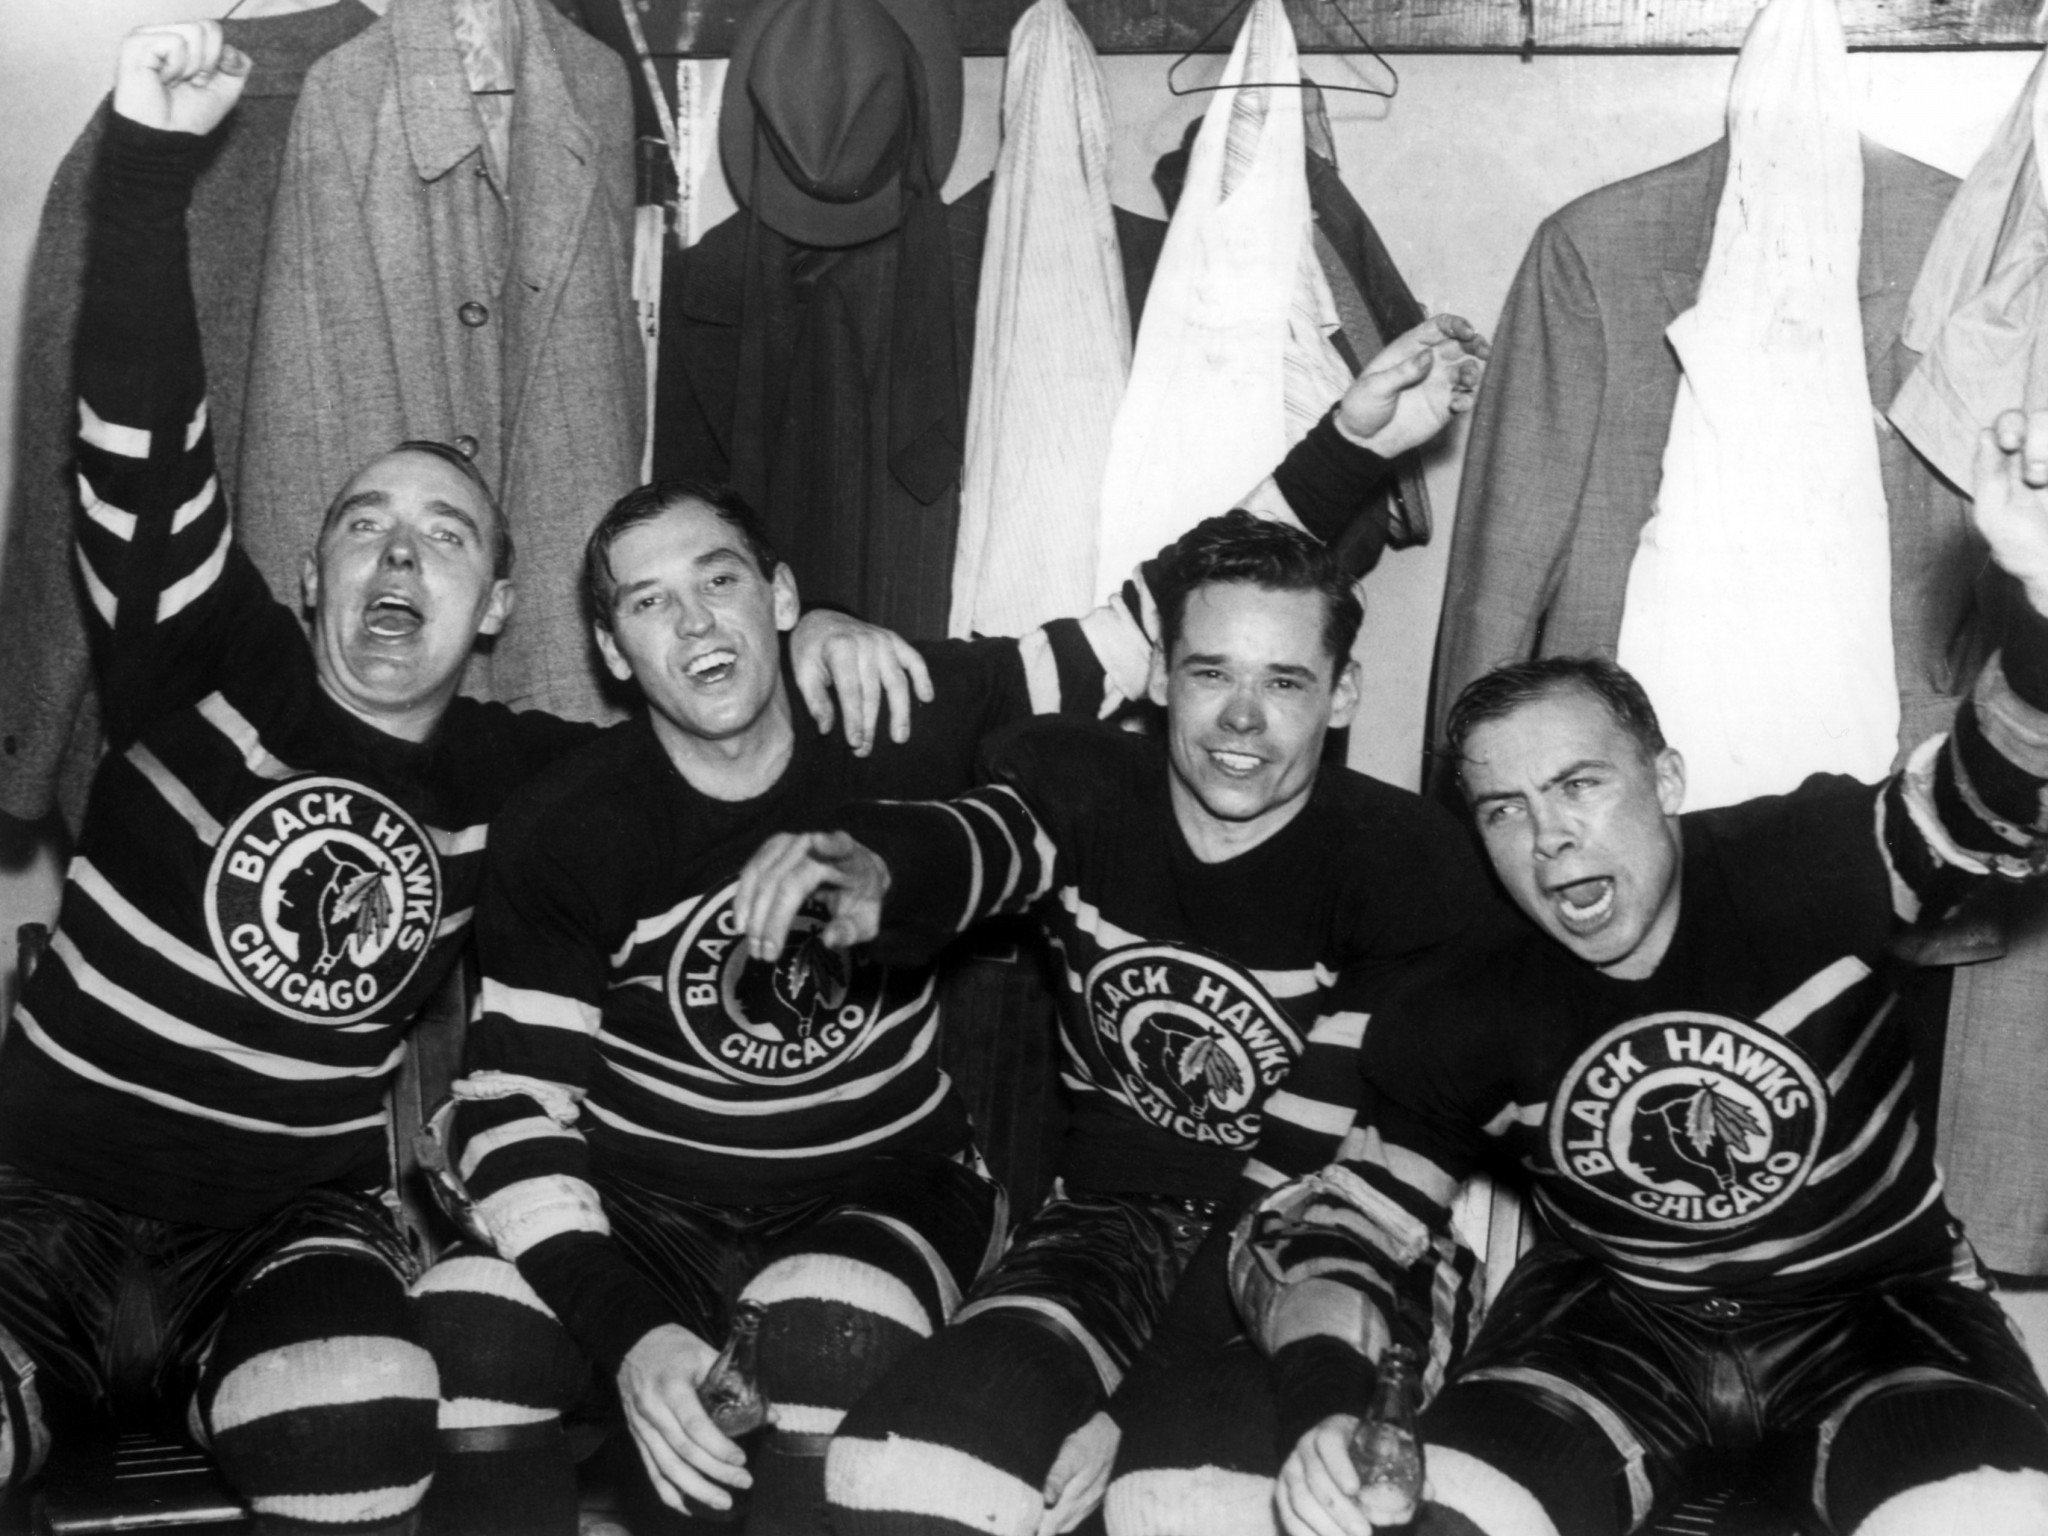 L-R) Jack Shill, Carl Voss, Cully Dahlstrom and Harold 'Mush' March of the Chicago Blackhawks celebrate in the locker room after they defeated the Toronto Maple Leafs in Game 4 of the 1938 Stanley Cup Finals on April 12, 1938 at Chicago Stadium in Chicago, Illinois. The Blackhawks defeated the Maple Leafs 4-1. (Photo by B Bennett/Getty Images)